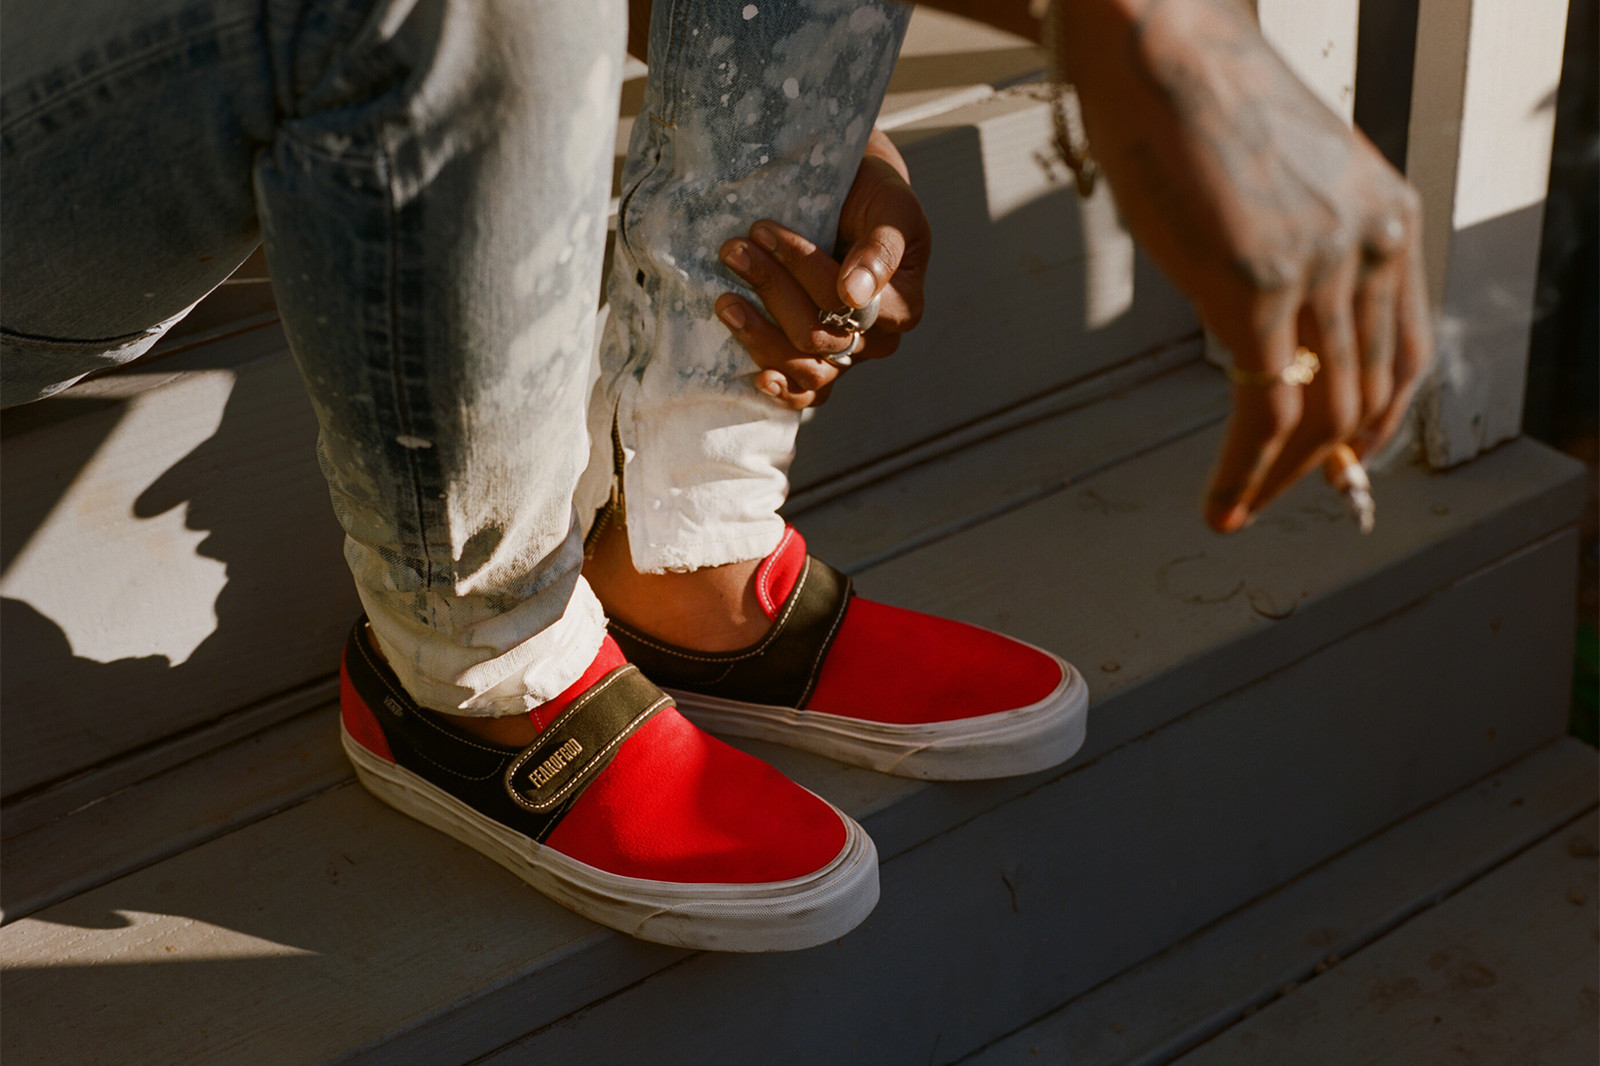 b77bb22f59 Exclusive Vans Fear of God FOG f.o.g. Collection Jerry Lorenzo Footwear  sneakers shoes red white black